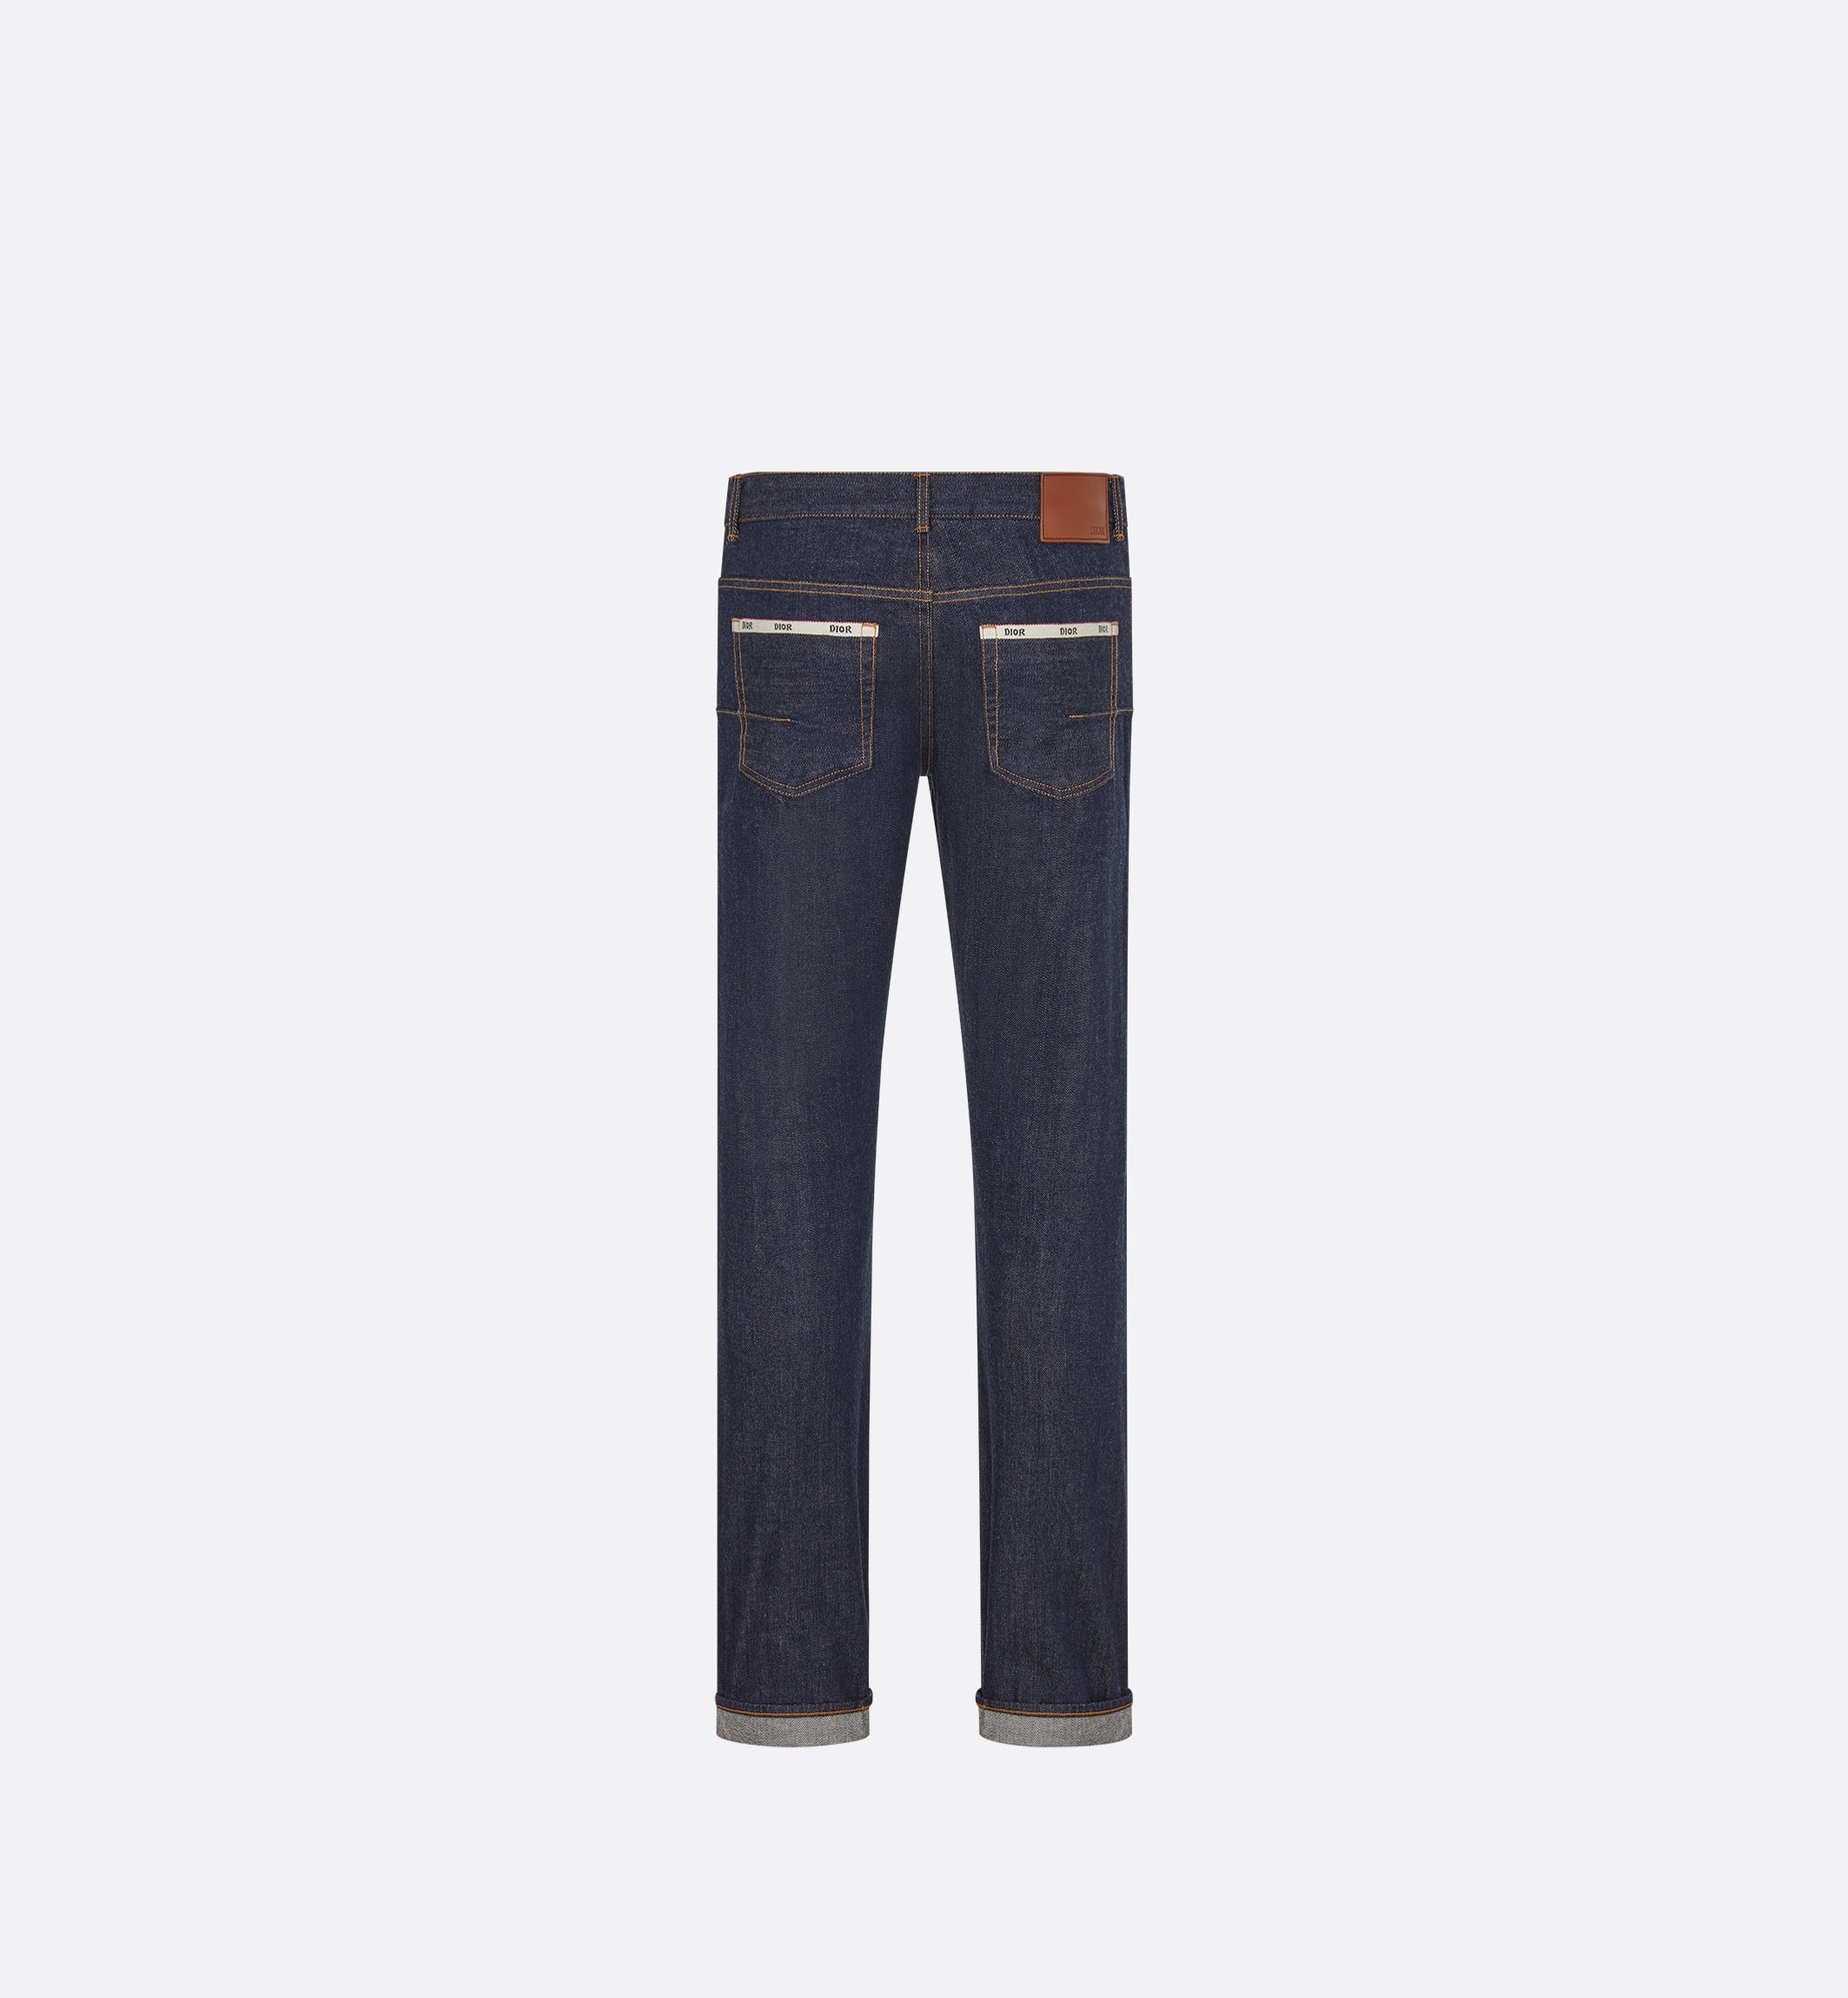 Selvedge Slim-Fit Jeans  Back view Open gallery